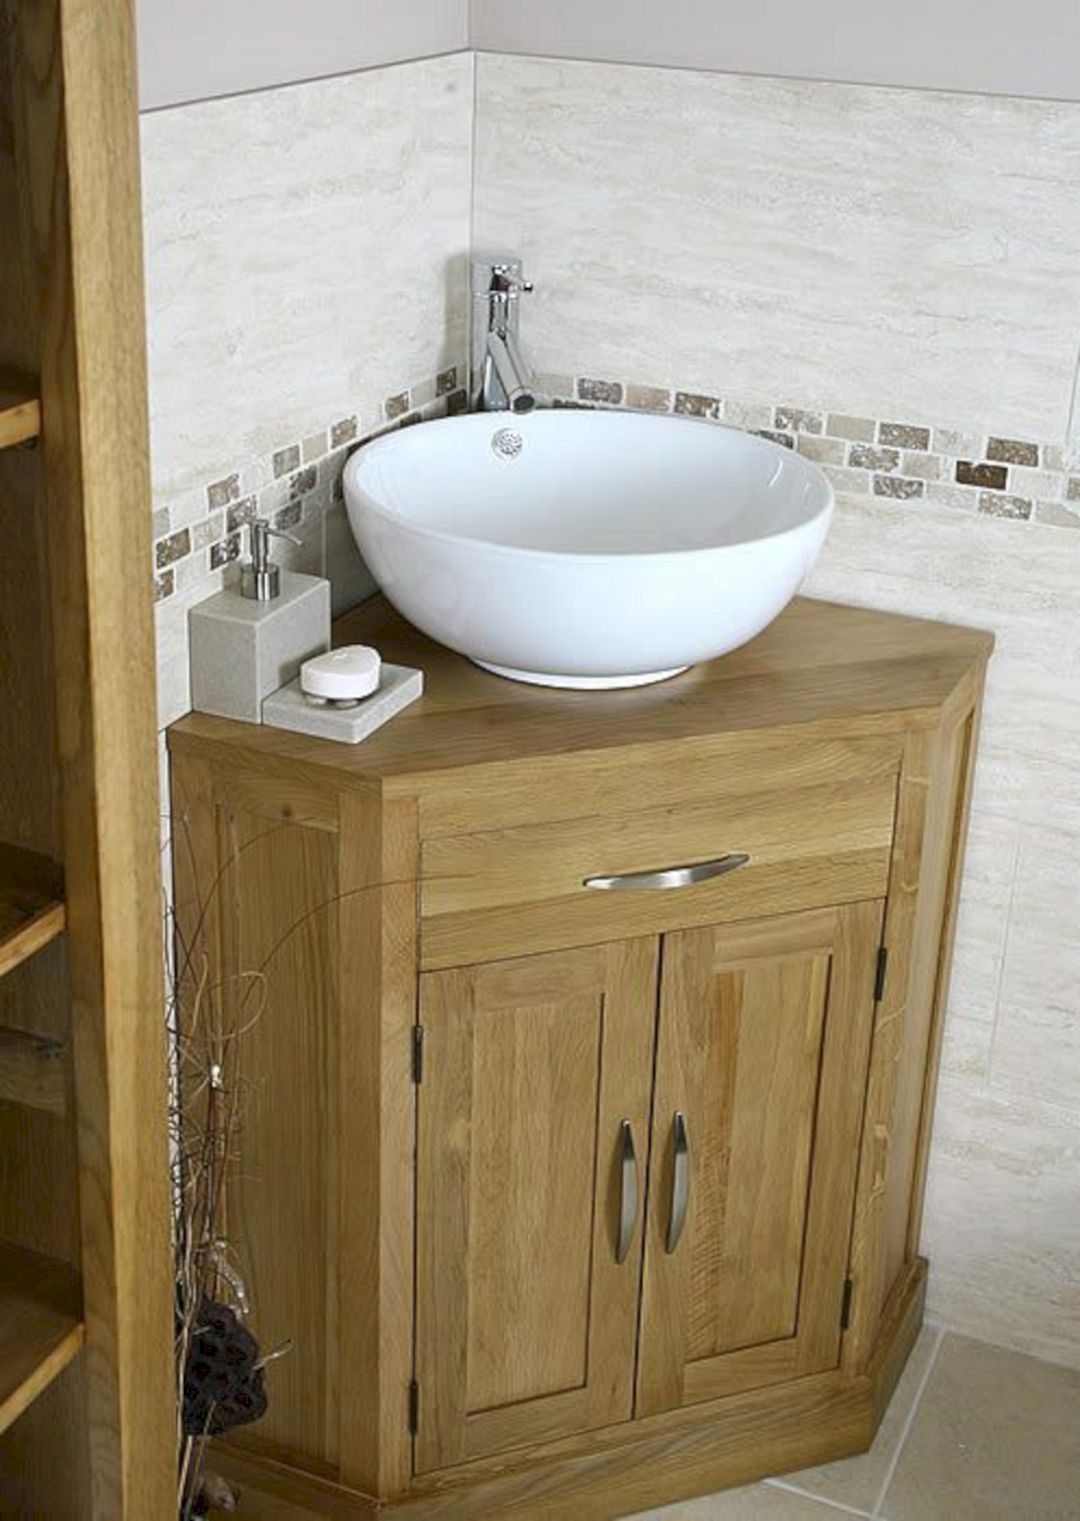 25 Lovely Corner Bathroom Sink Ideas For Small Bathroom Inspiration Freshouz Com Small Bathroom Sinks Corner Sink Bathroom Small Bathroom Vanities